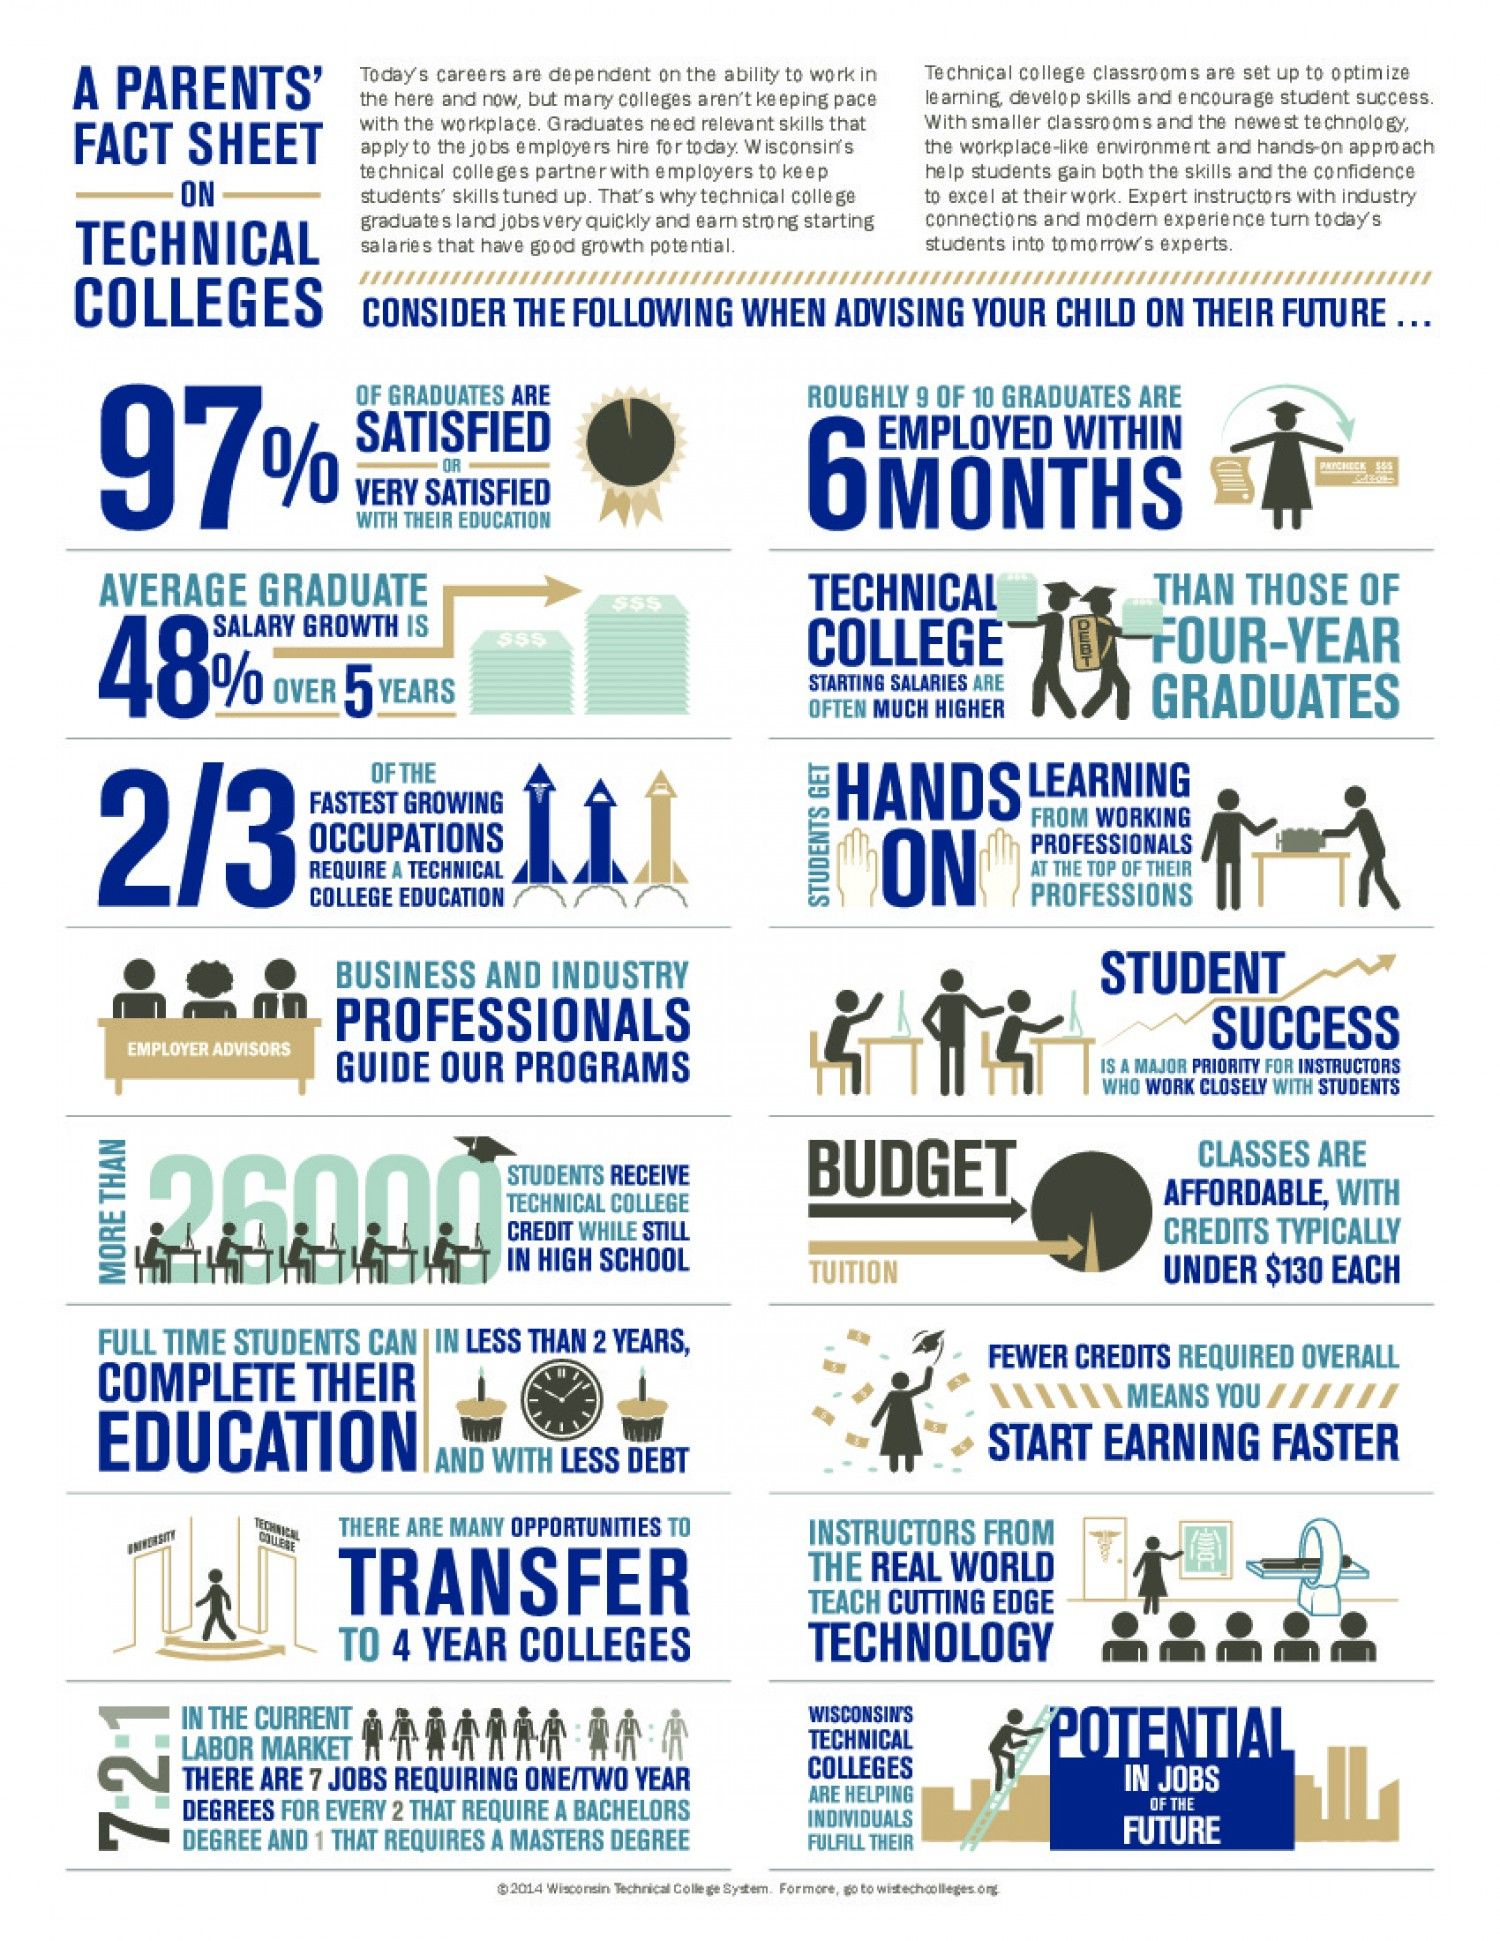 best images about benefits of a technical college degree on 17 best images about benefits of a technical college degree popular it is and career